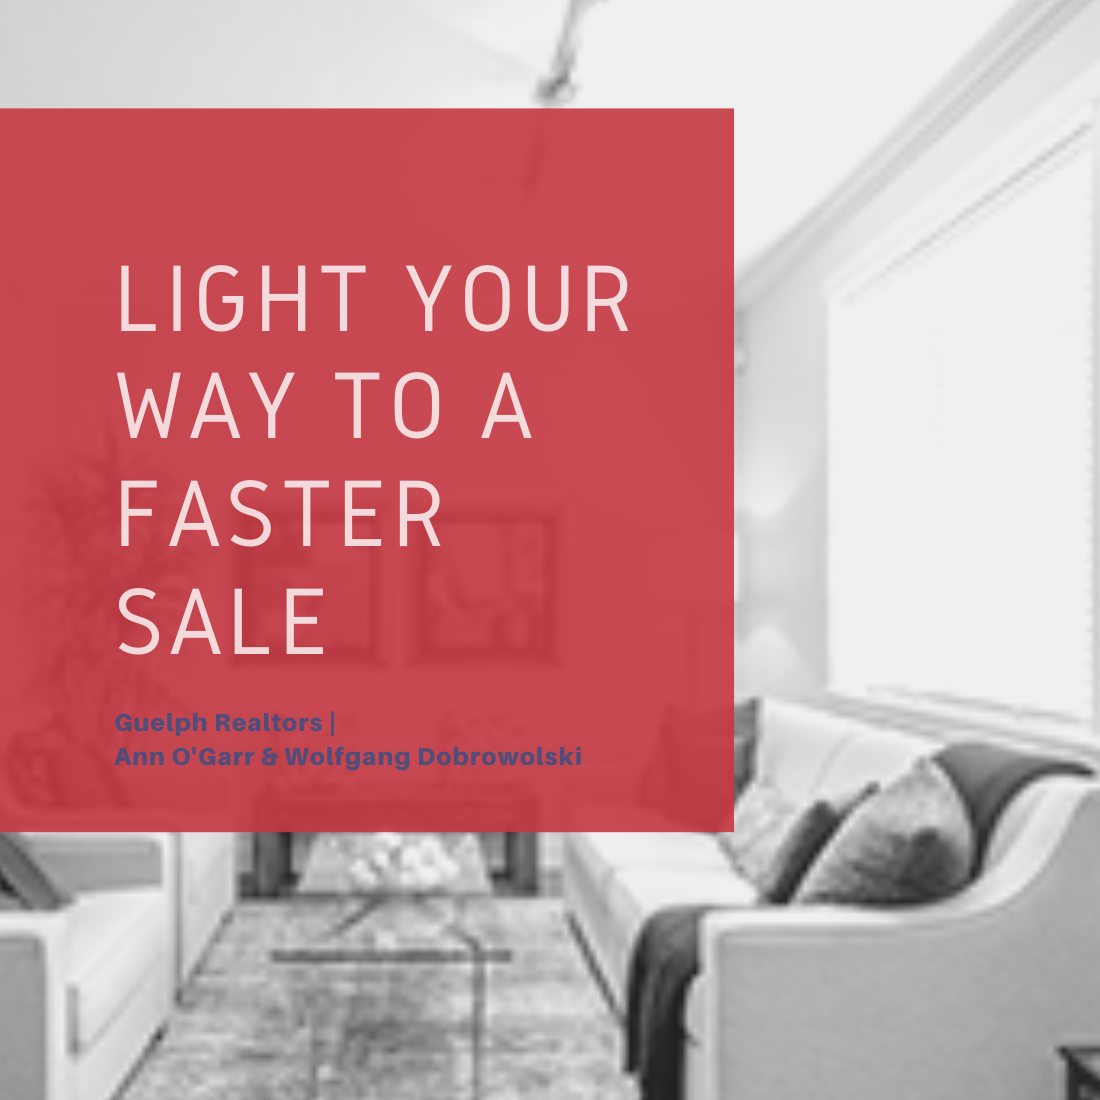 Guelph Realtor Tips - Light Your Way to a Faster Sale